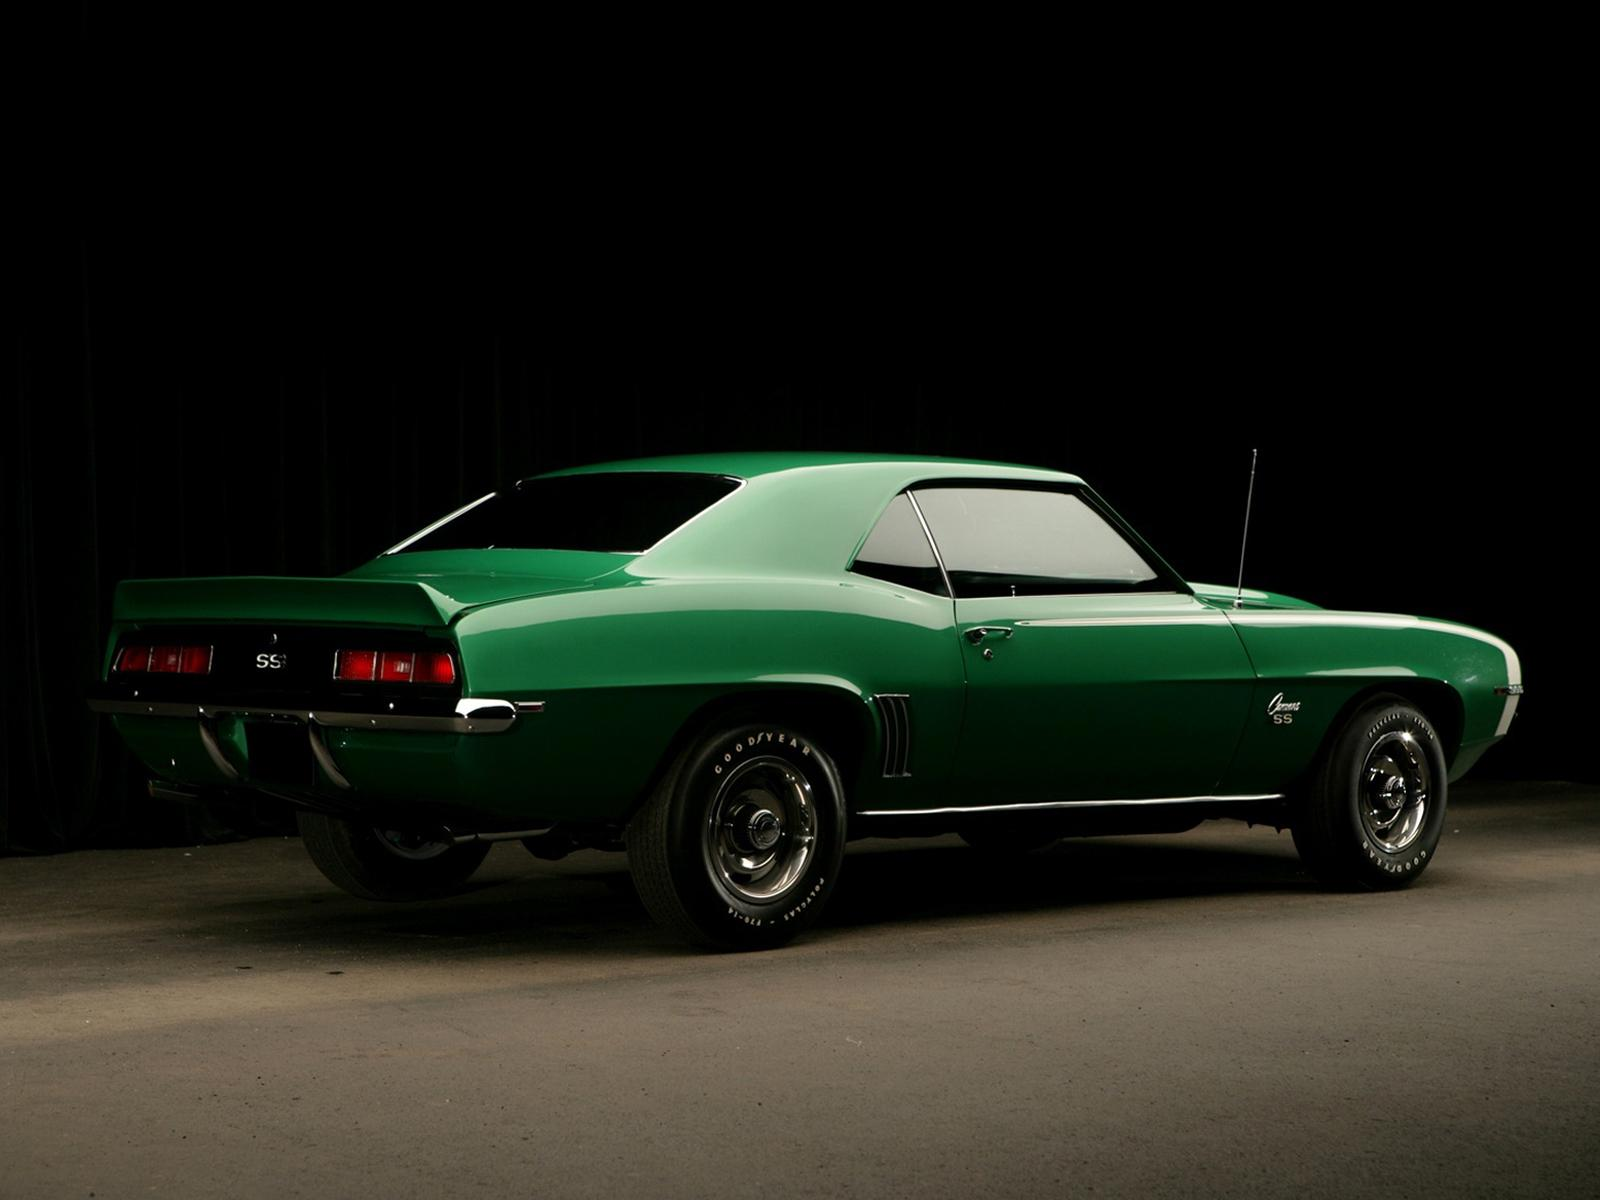 American Muscle Car Wallpaper 6523 Hd Wallpapers in Cars   Imagesci 1600x1200